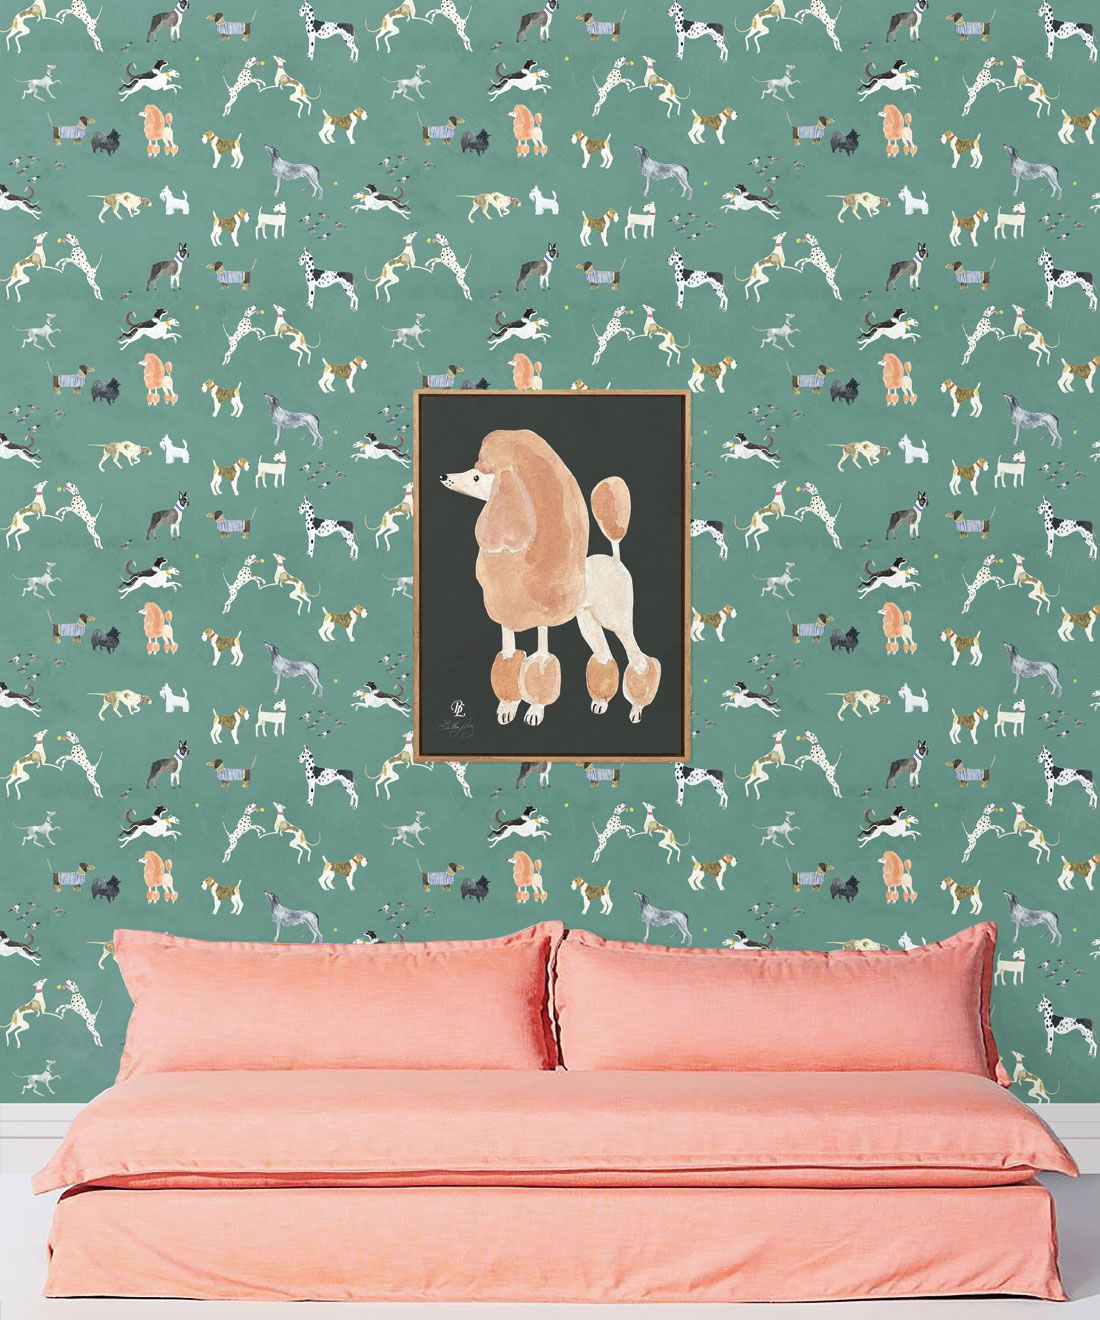 Doggies Wallpaper • Dog Wallpaper • Turquoise • insitu with pink sofa